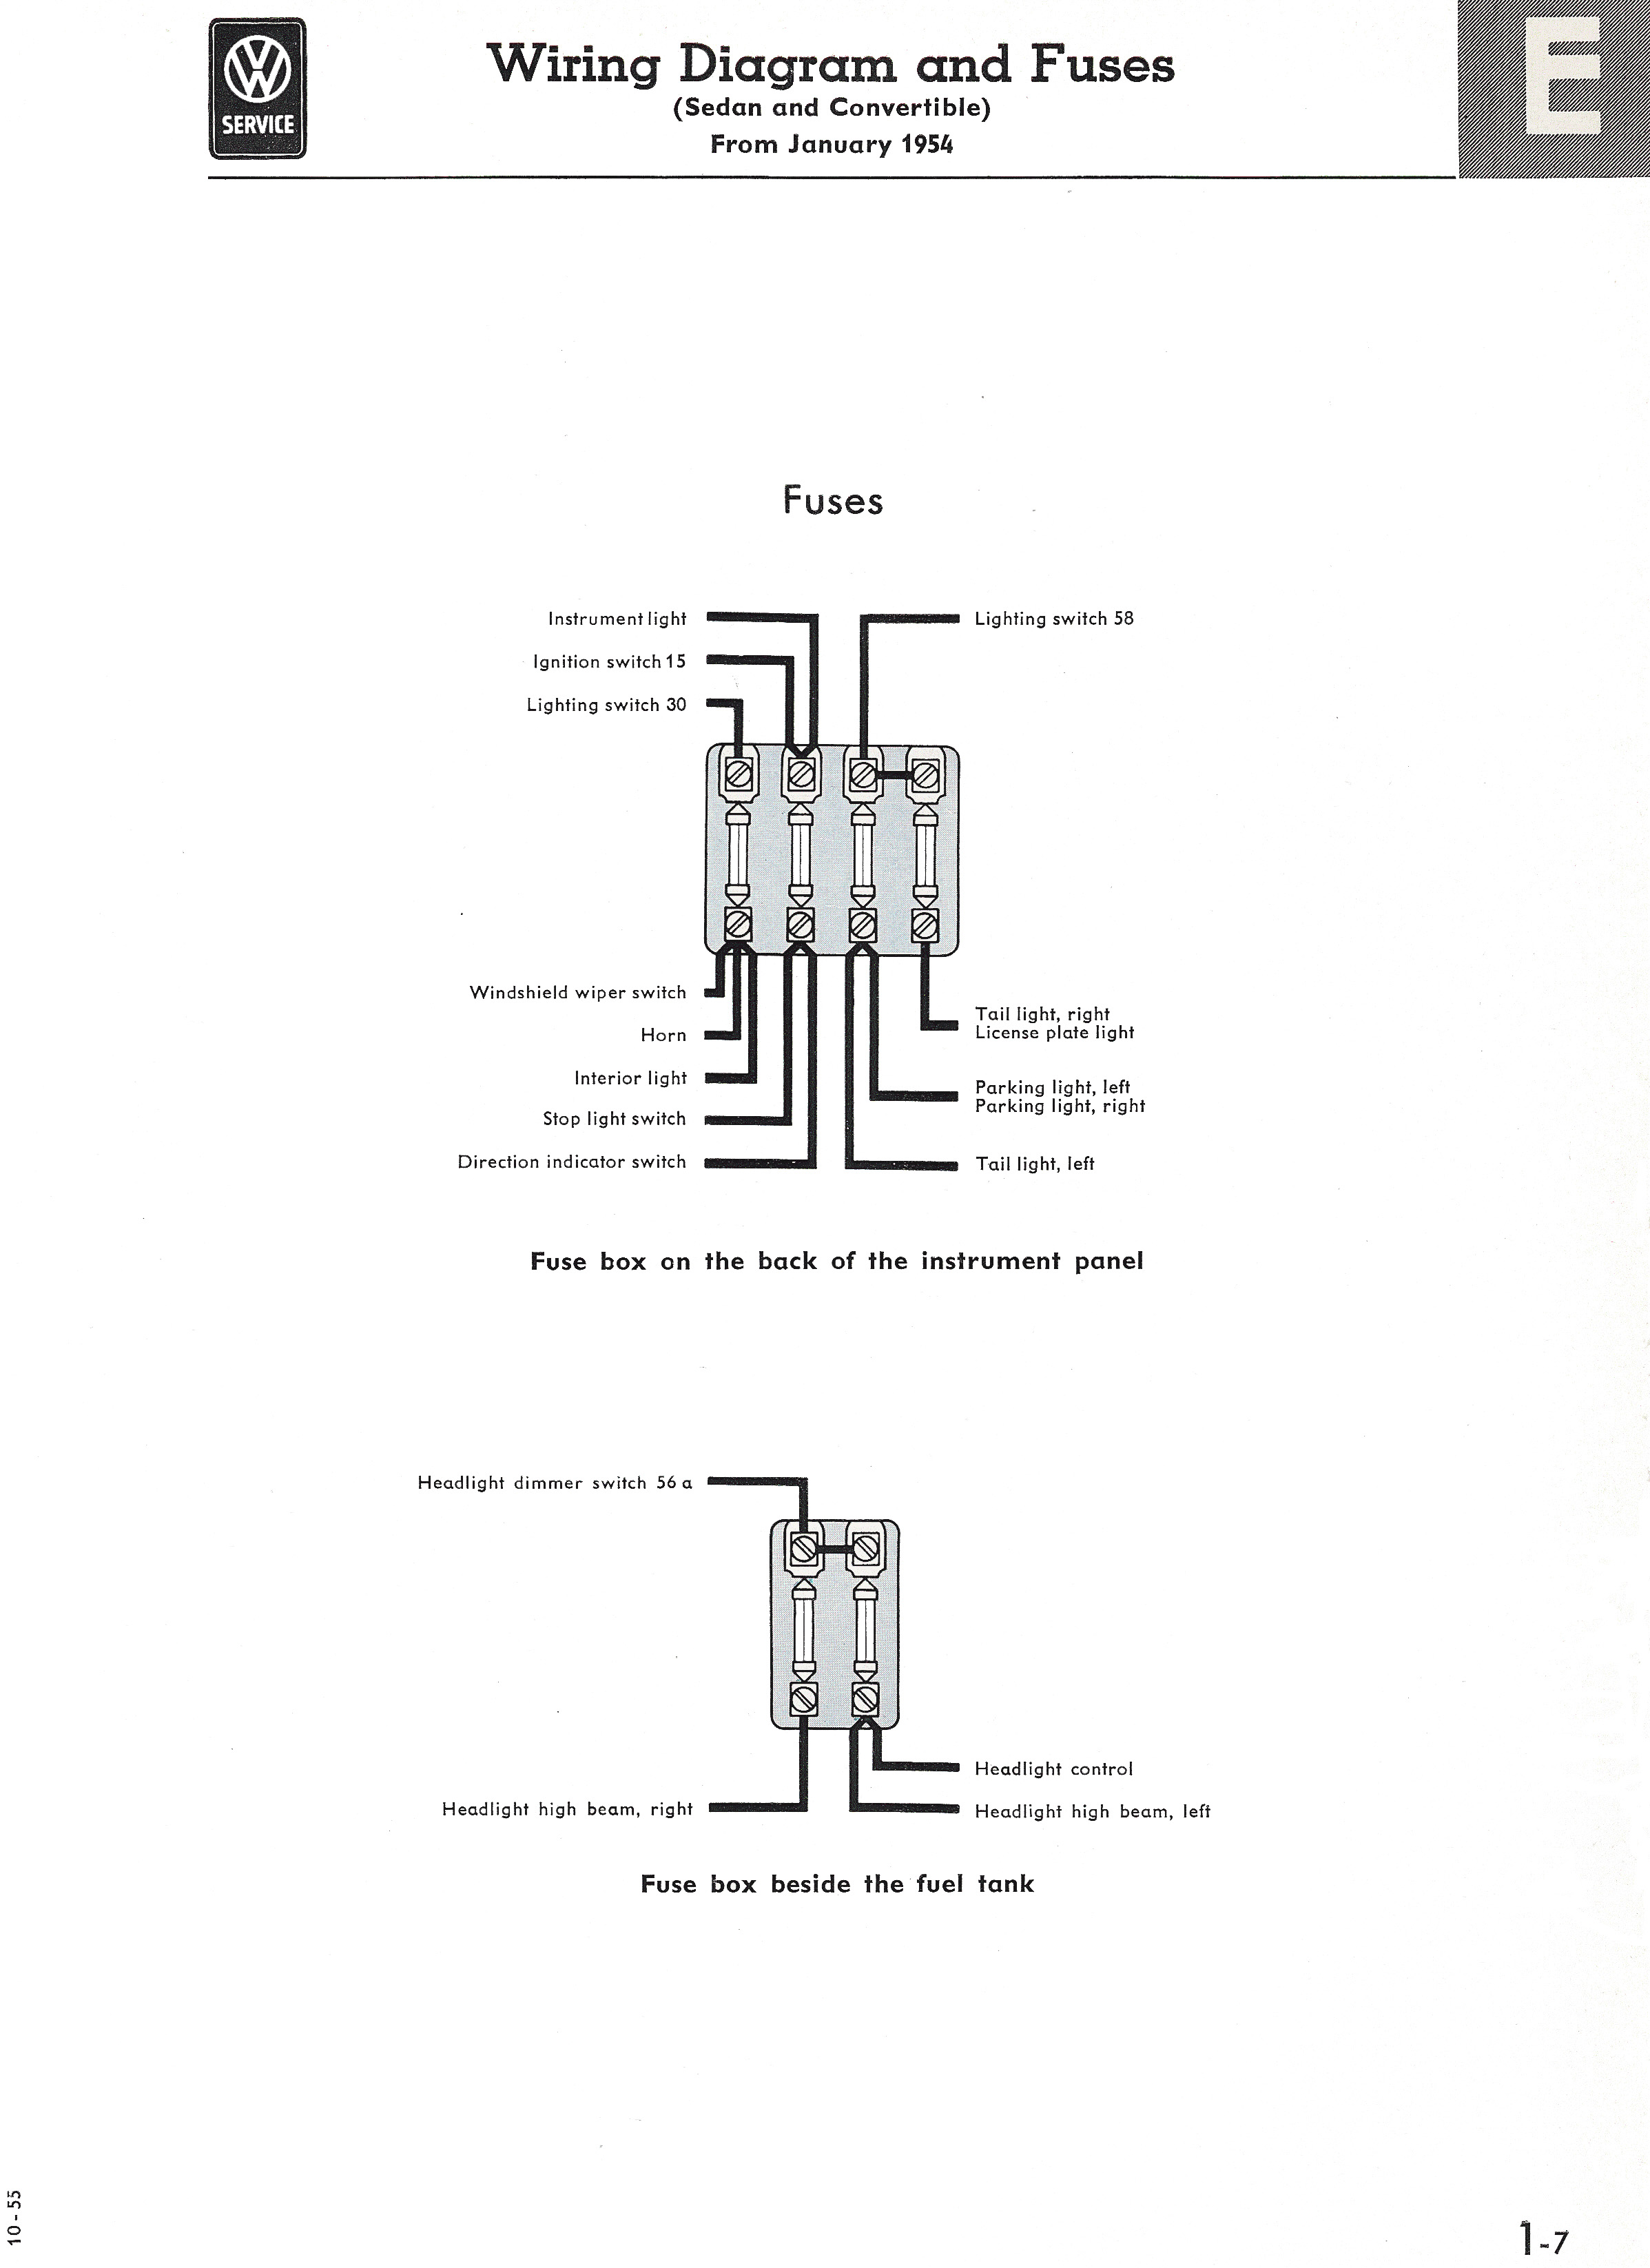 Vw Bug Engine Wiring | Wiring Diagram Vw Type Wiring Diagram on jaguar s type wiring diagram, vw type 1 maintenance, vw type 1 suspension, vw type 1 fuel pump, vw type 1 fuel gauge, vw type 1 exhaust, vw type 1 air conditioning, vw type 1 generator, vw type 1 fan belt, vw type 1 dimensions, vw type 1 body, vw type 1 flywheel, vw type 1 starter, vw type 1 brakes, vw type 1 wheels, vw type 1 frame, volkswagen type 3 wiring diagram, vw type 1 torque specs,